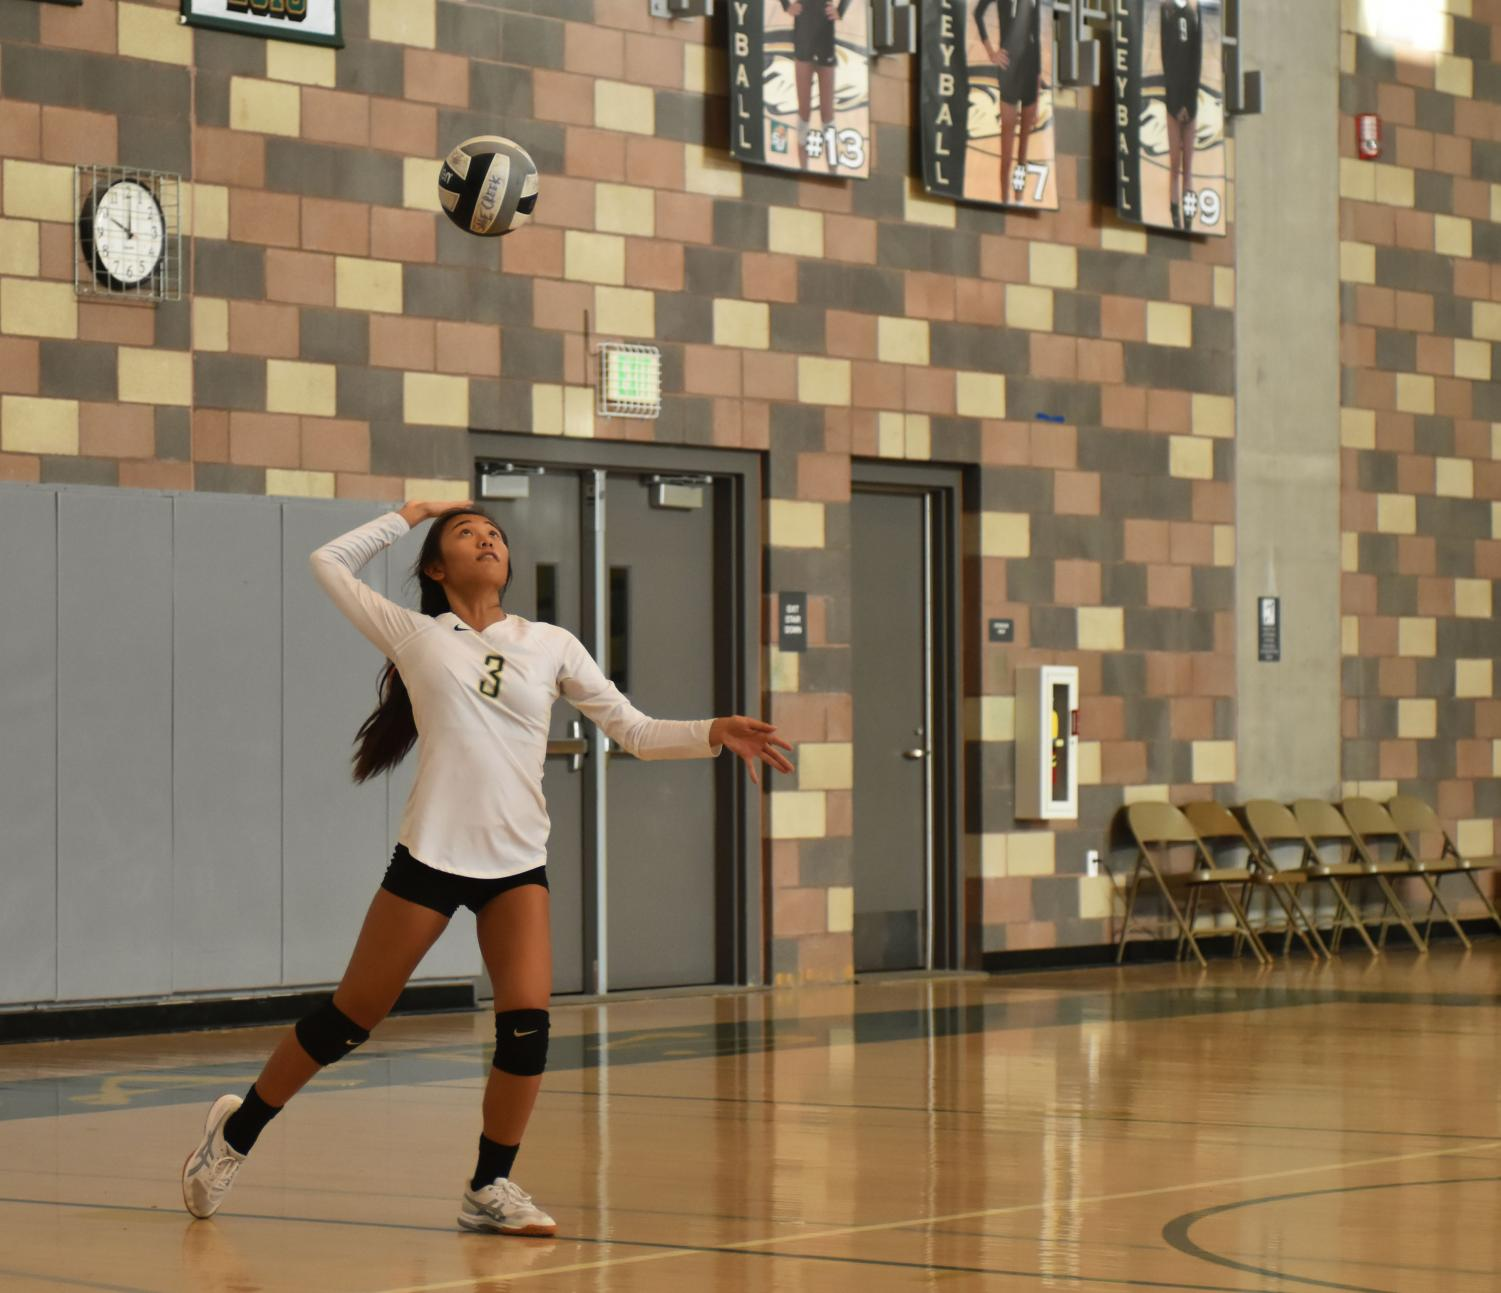 Freshman%2C+Bethany+Elizabeth+Tomaneng+uses+an+overhead+serve+during+the+girls+varsity+volleyball+match+against+Helix+Charter+High+School.+The+Sage+Creek+girls+varsity+volleyball+team+took+the+win+against+Helix+on%2C+Sept.+5+with+a+score+of+3-0.